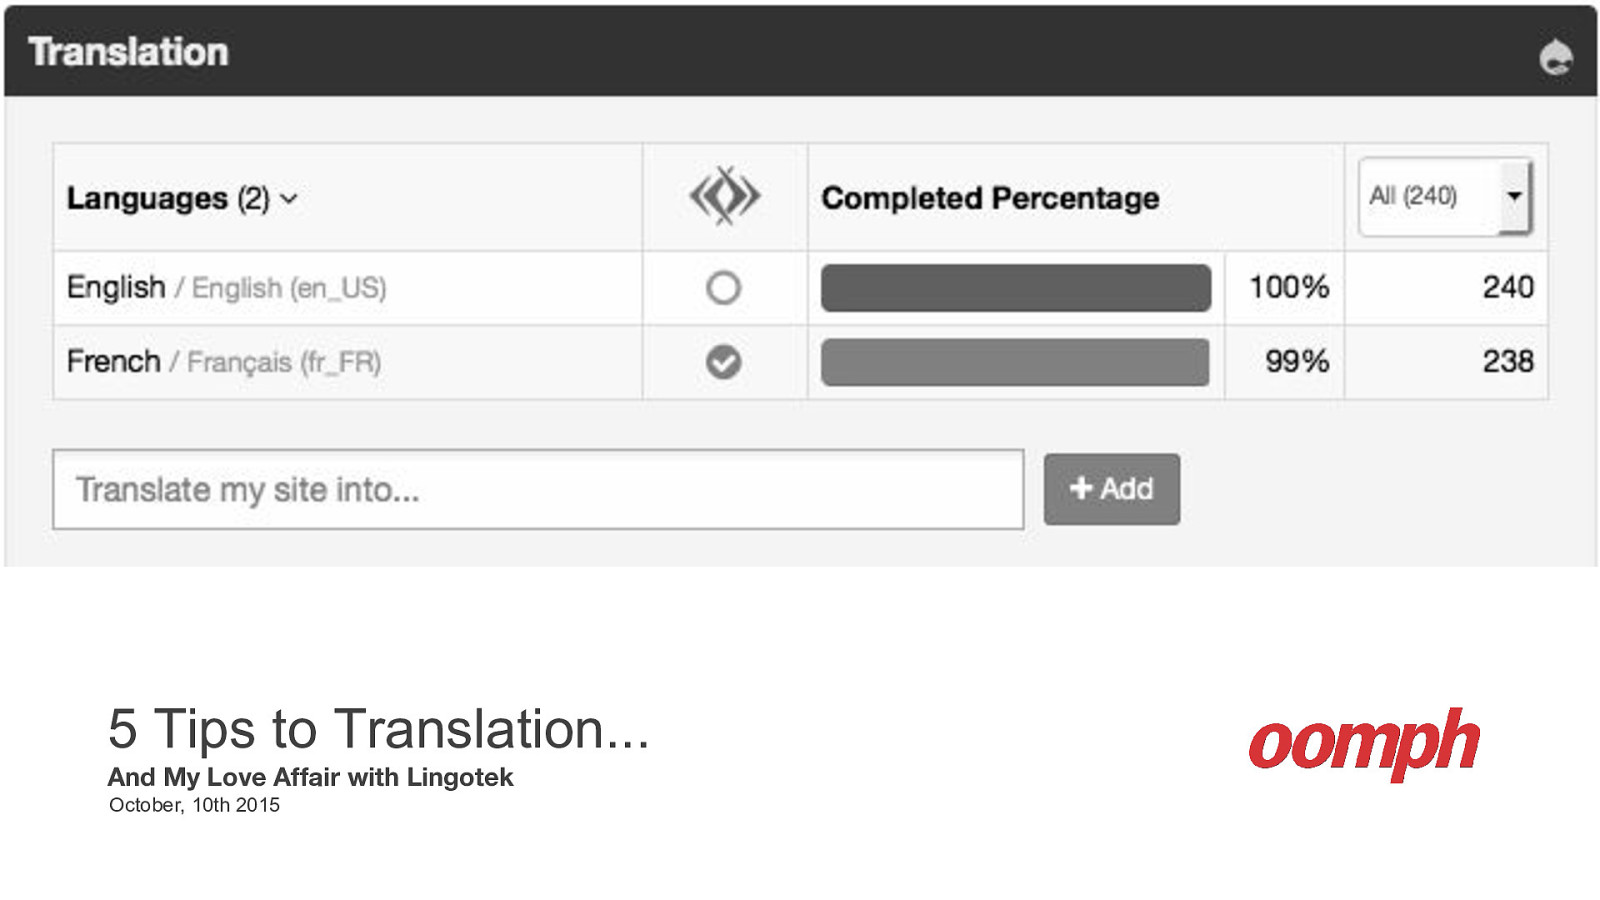 5 Tips to Translation... And My Love Affair with Lingotek